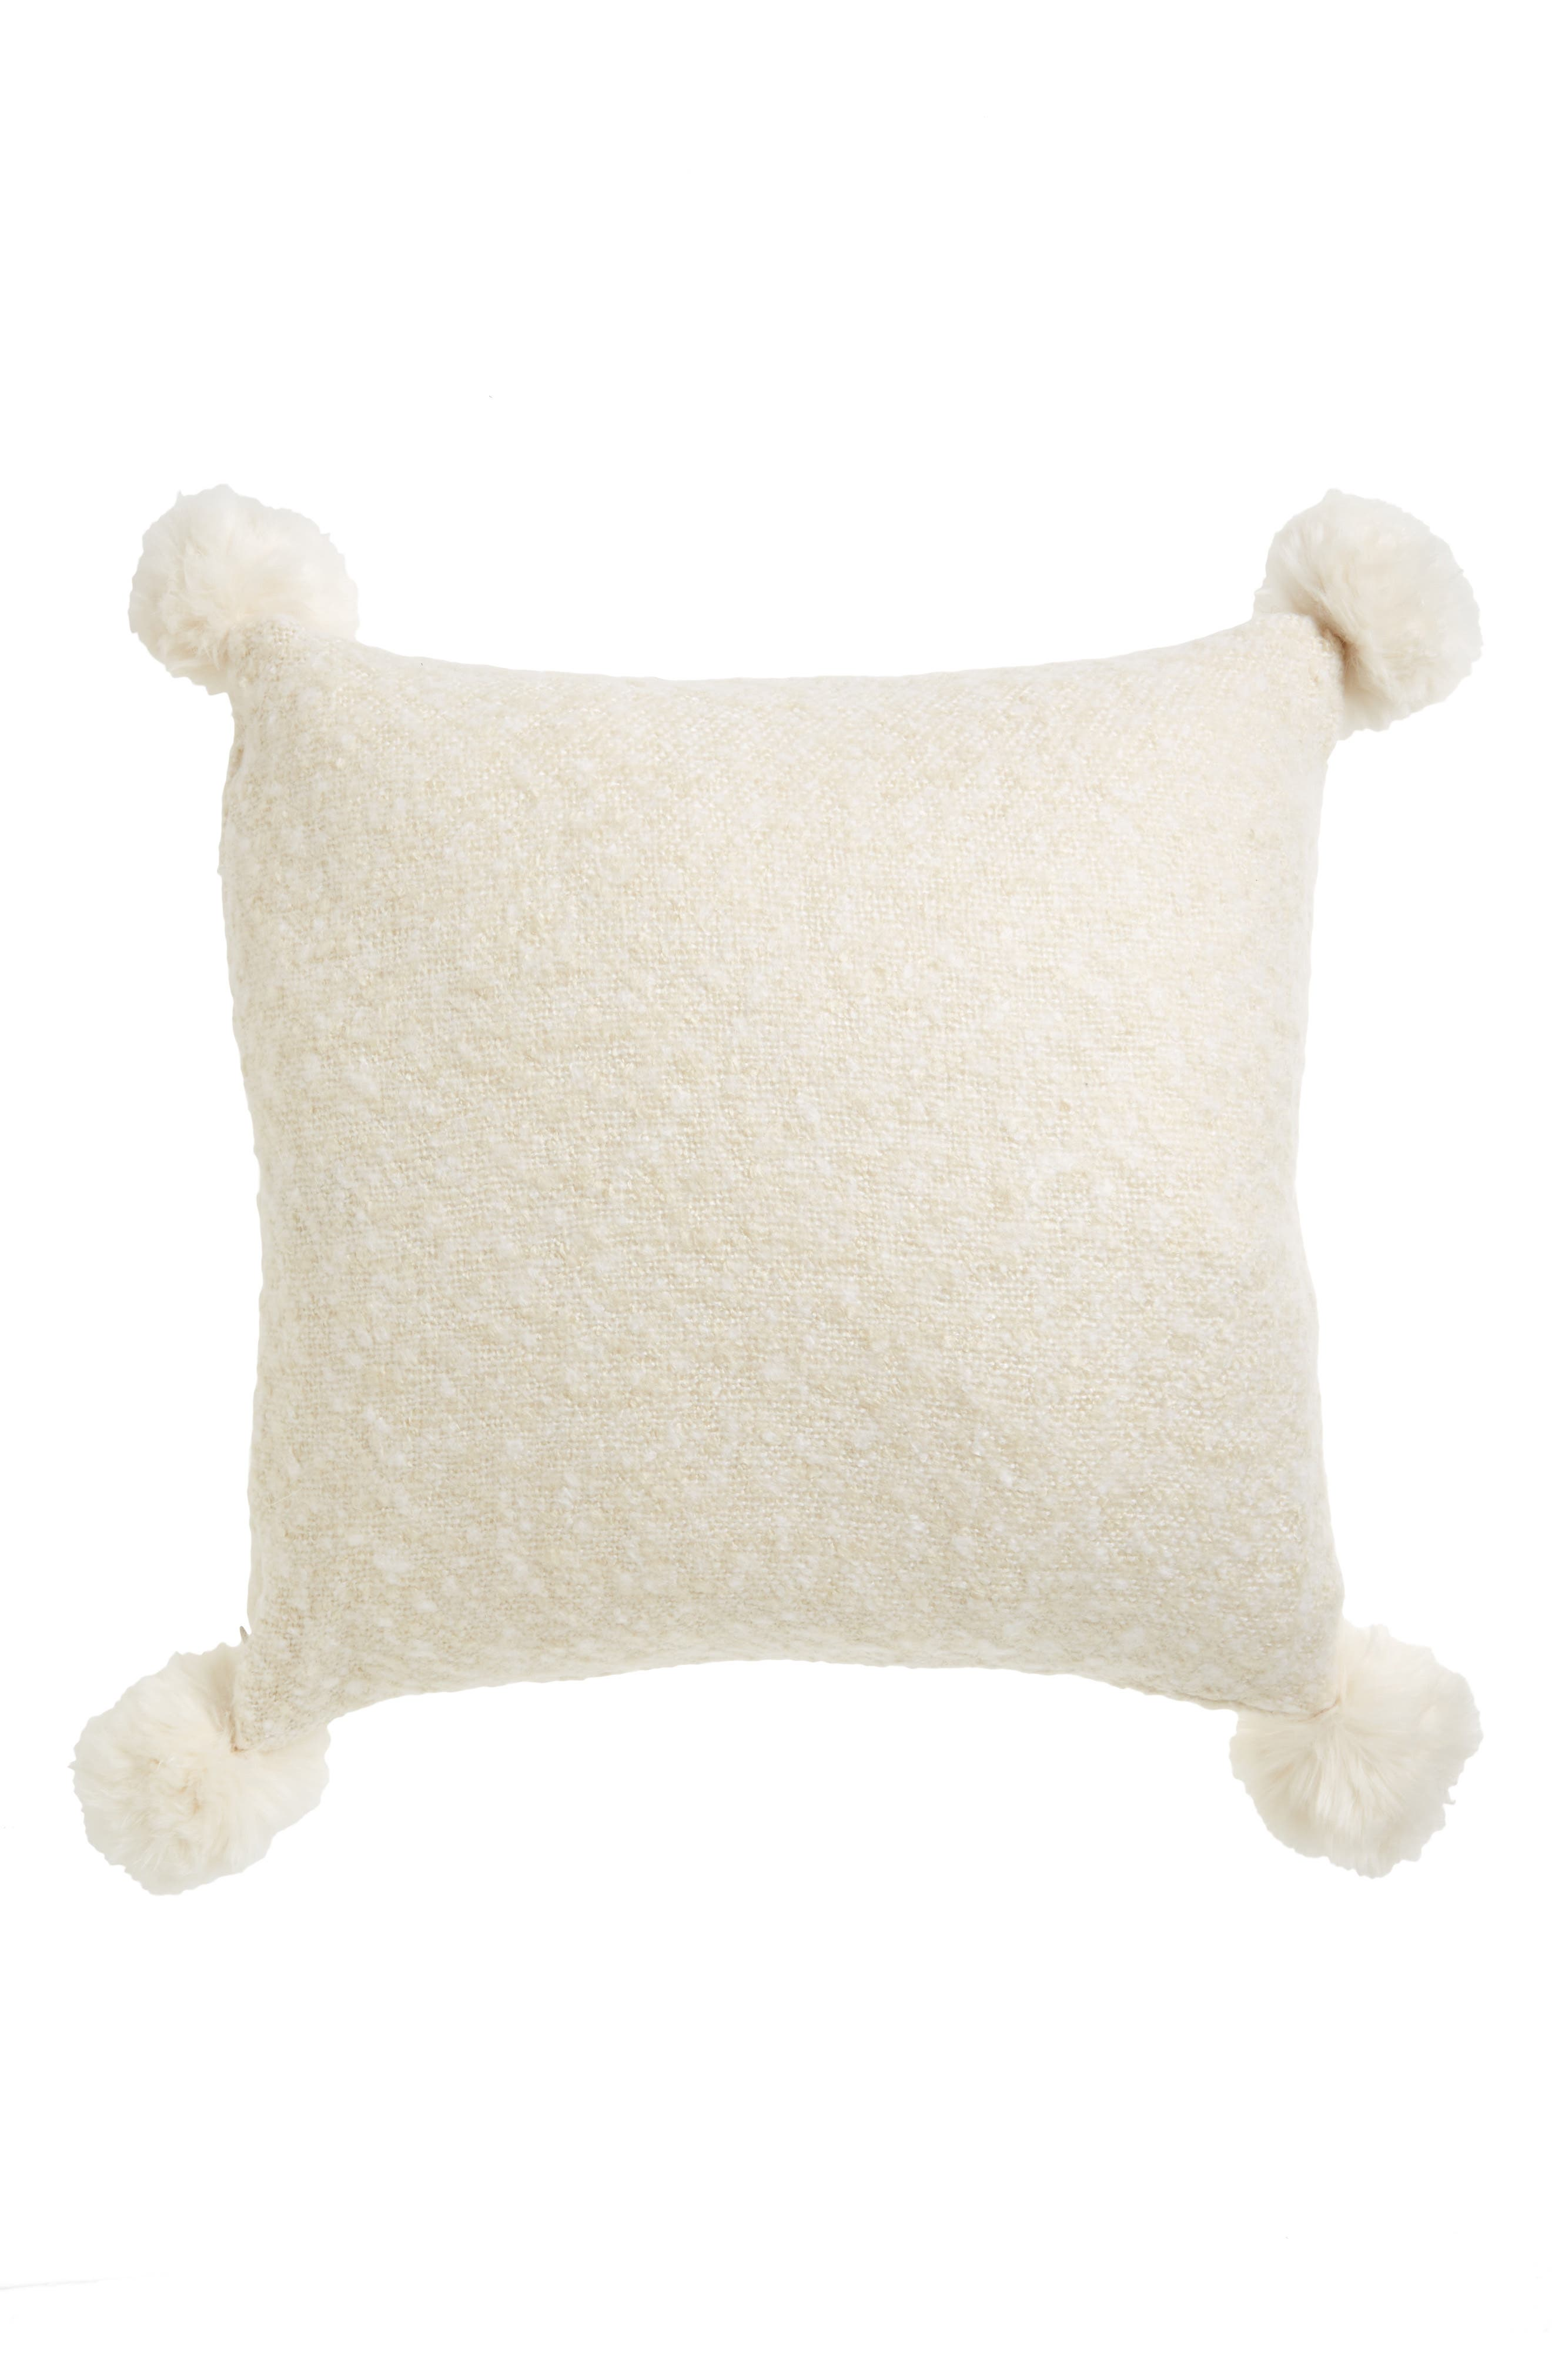 Brushed Accent Pillow with Pompoms,                         Main,                         color, 900